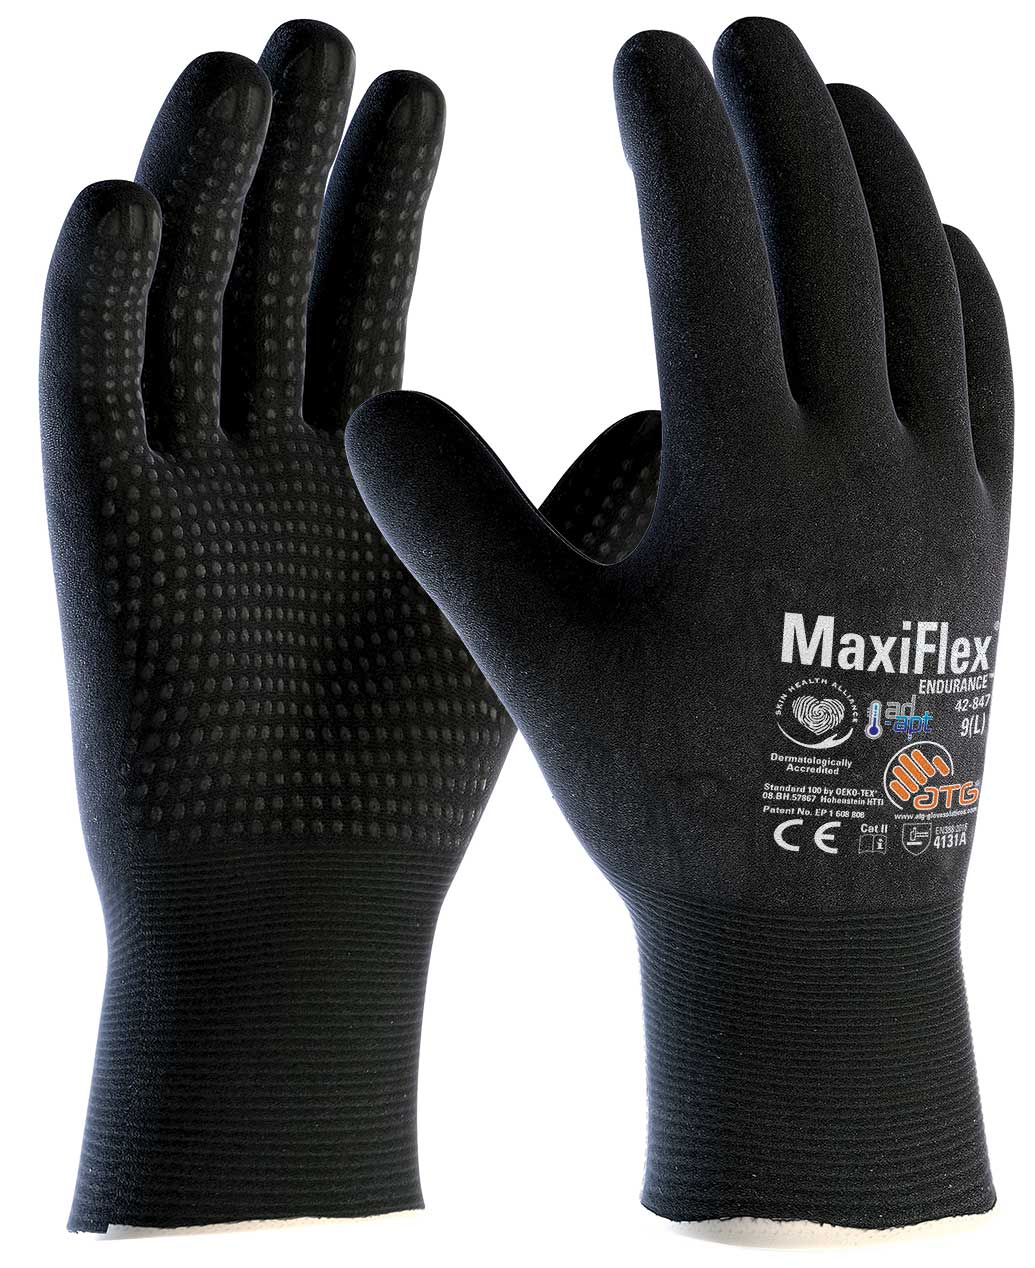 42-847 MaxiFlex® Endurance™ with AD-APT™ Image